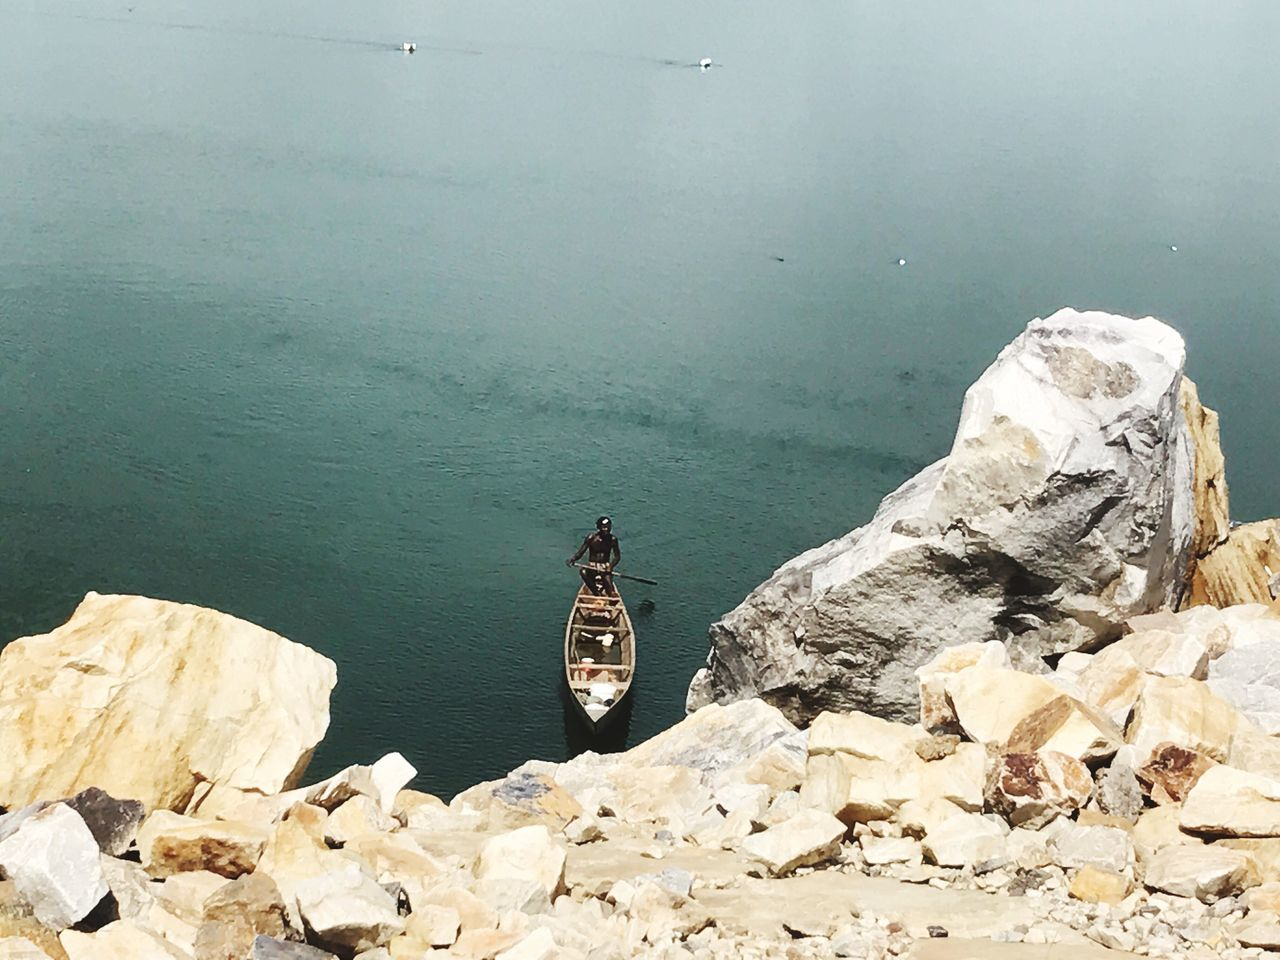 Lonely fisherman Water High Angle View Rock - Object Day Nature Outdoors Men One Person People Close-up Lifestyles Horizon Over Water Real People Mode Of Transport Leisure Activity Finding New Frontiers